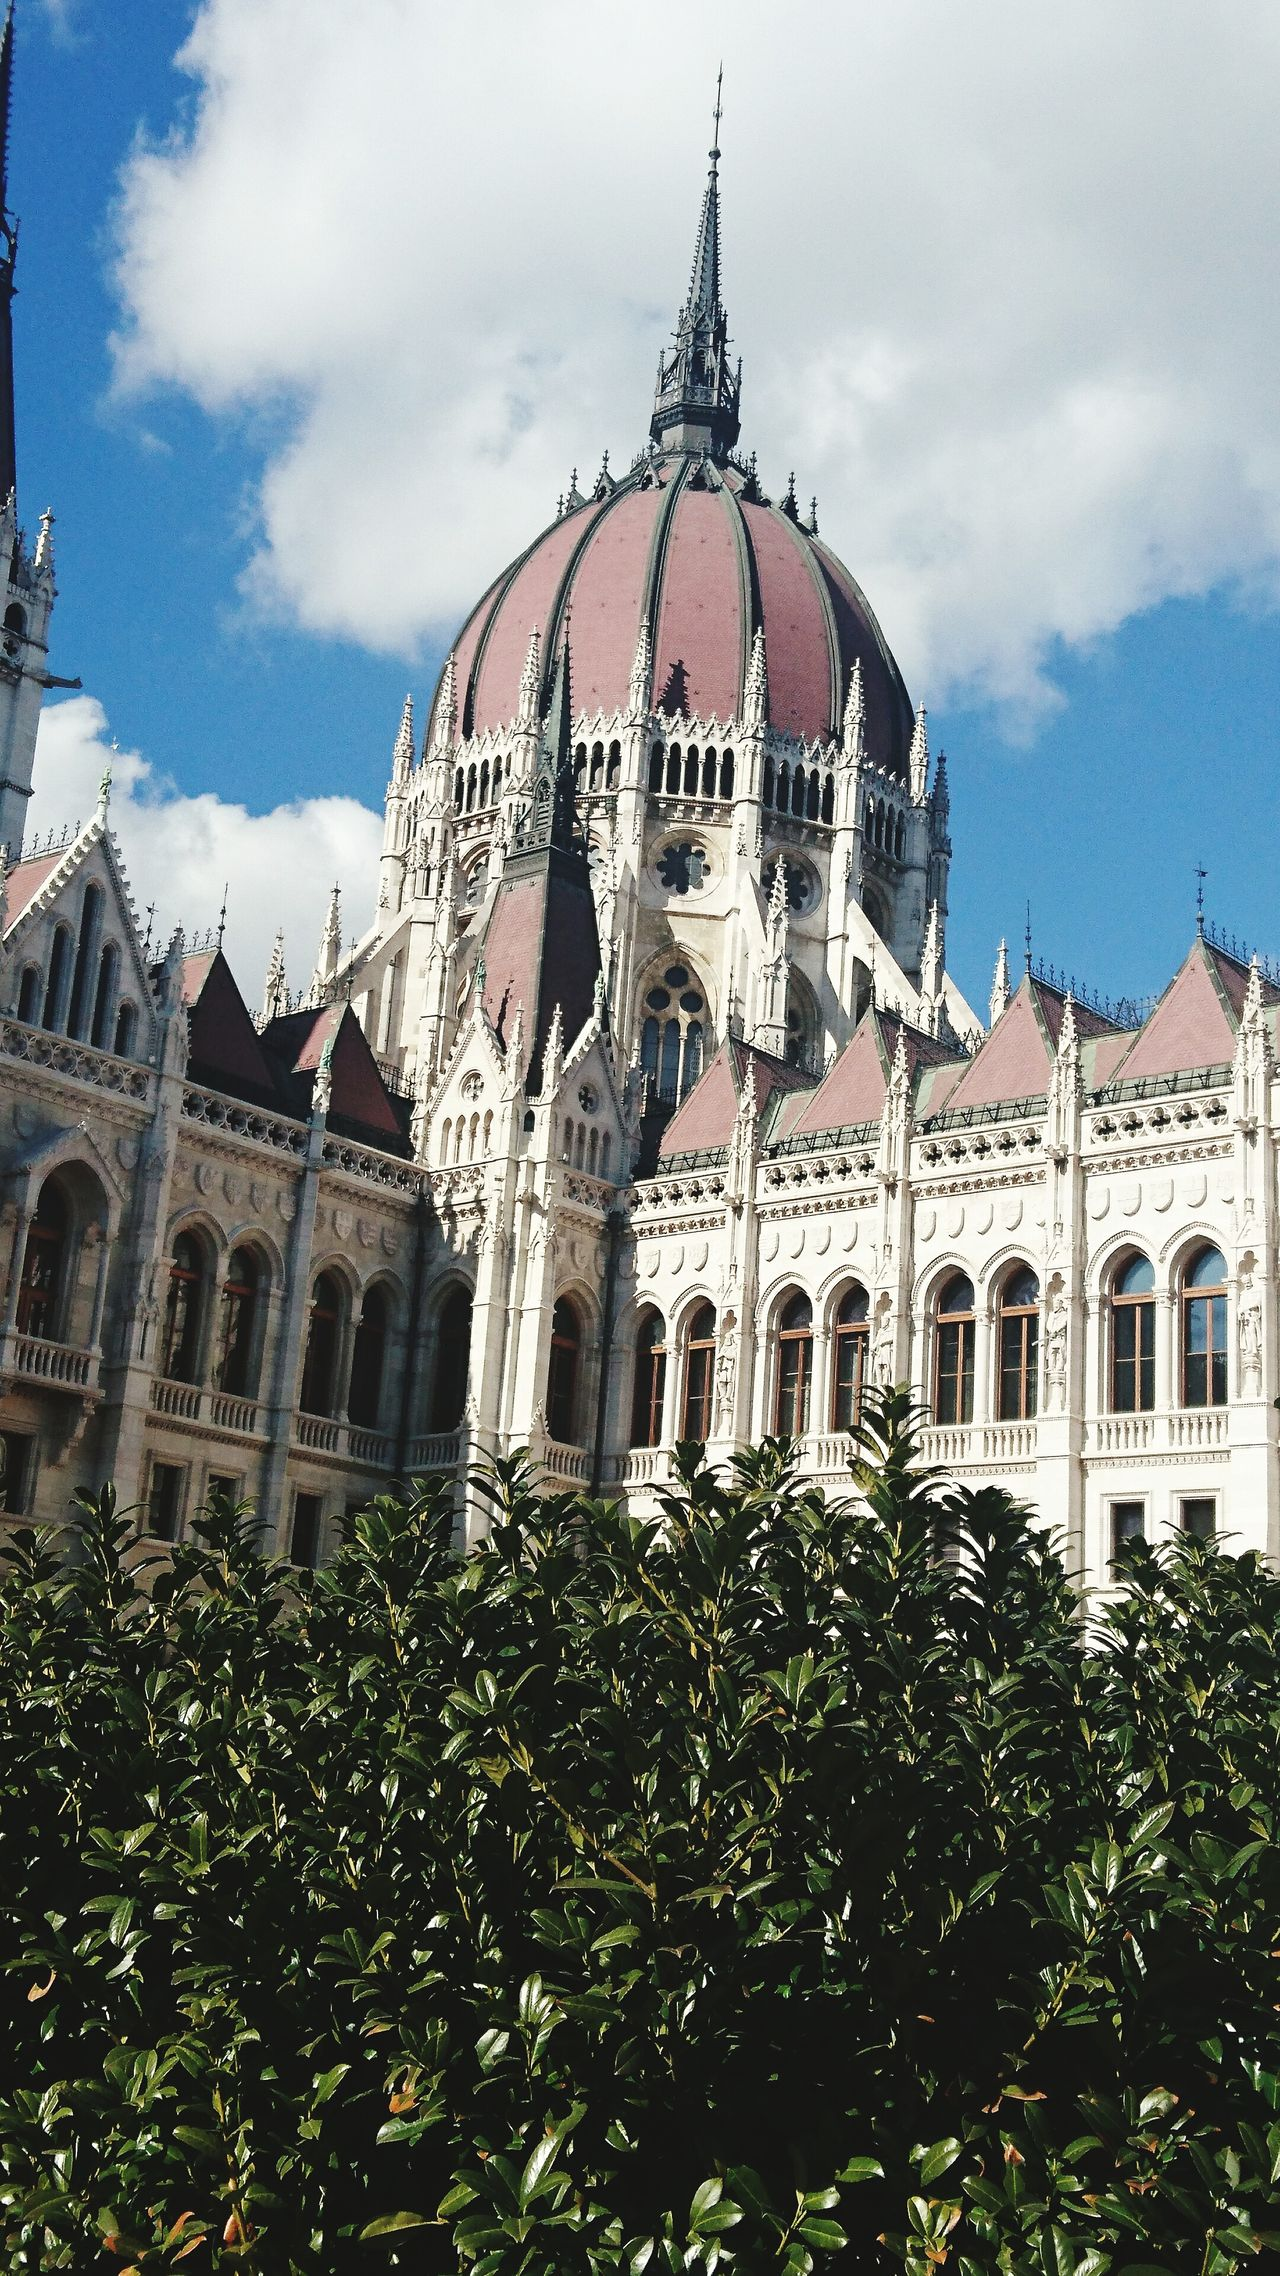 Architecture Tourism Travel History City Building Exterior Budapest - Hungary Parlament Of Hungary Orszaghaz